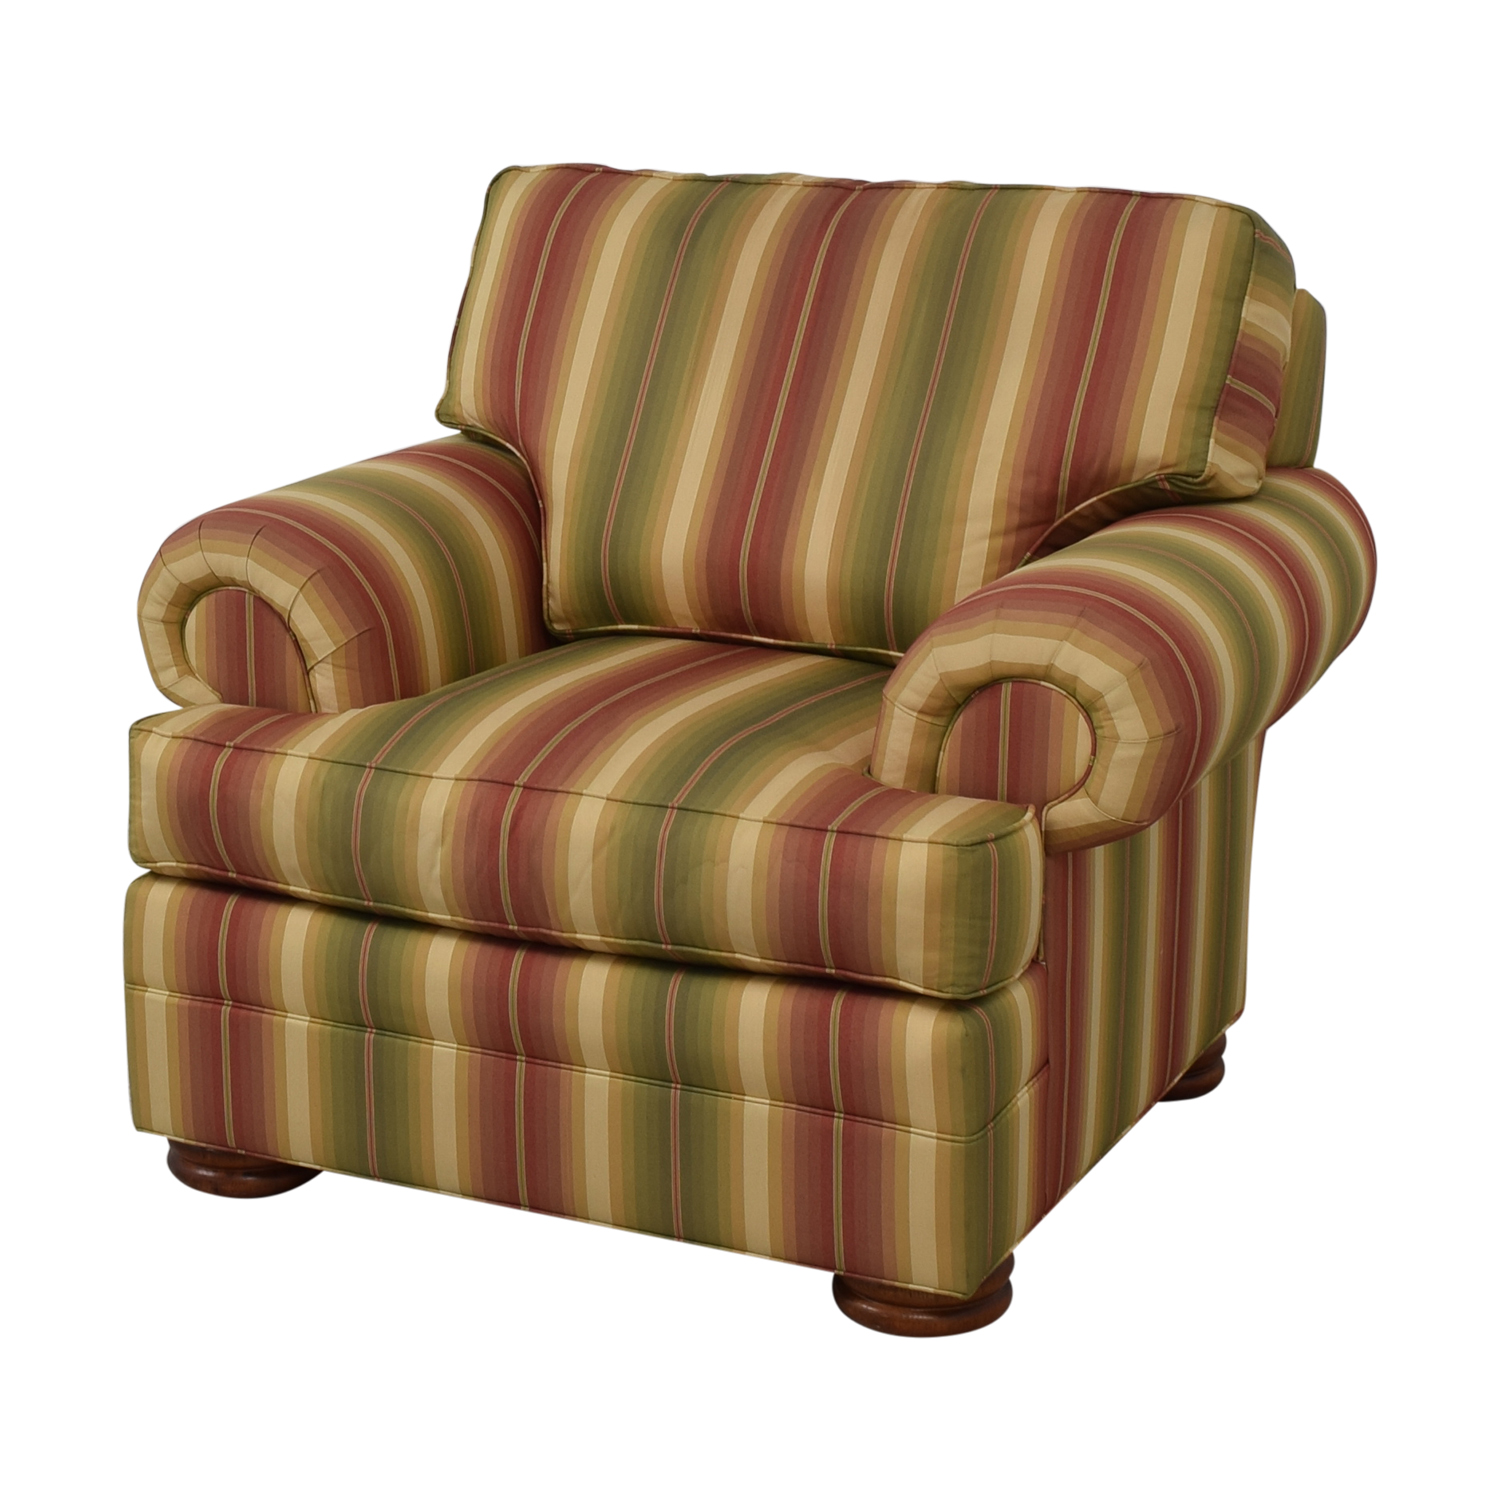 Thomasville Thomasville Custom Roll Arm Accent Chair nyc